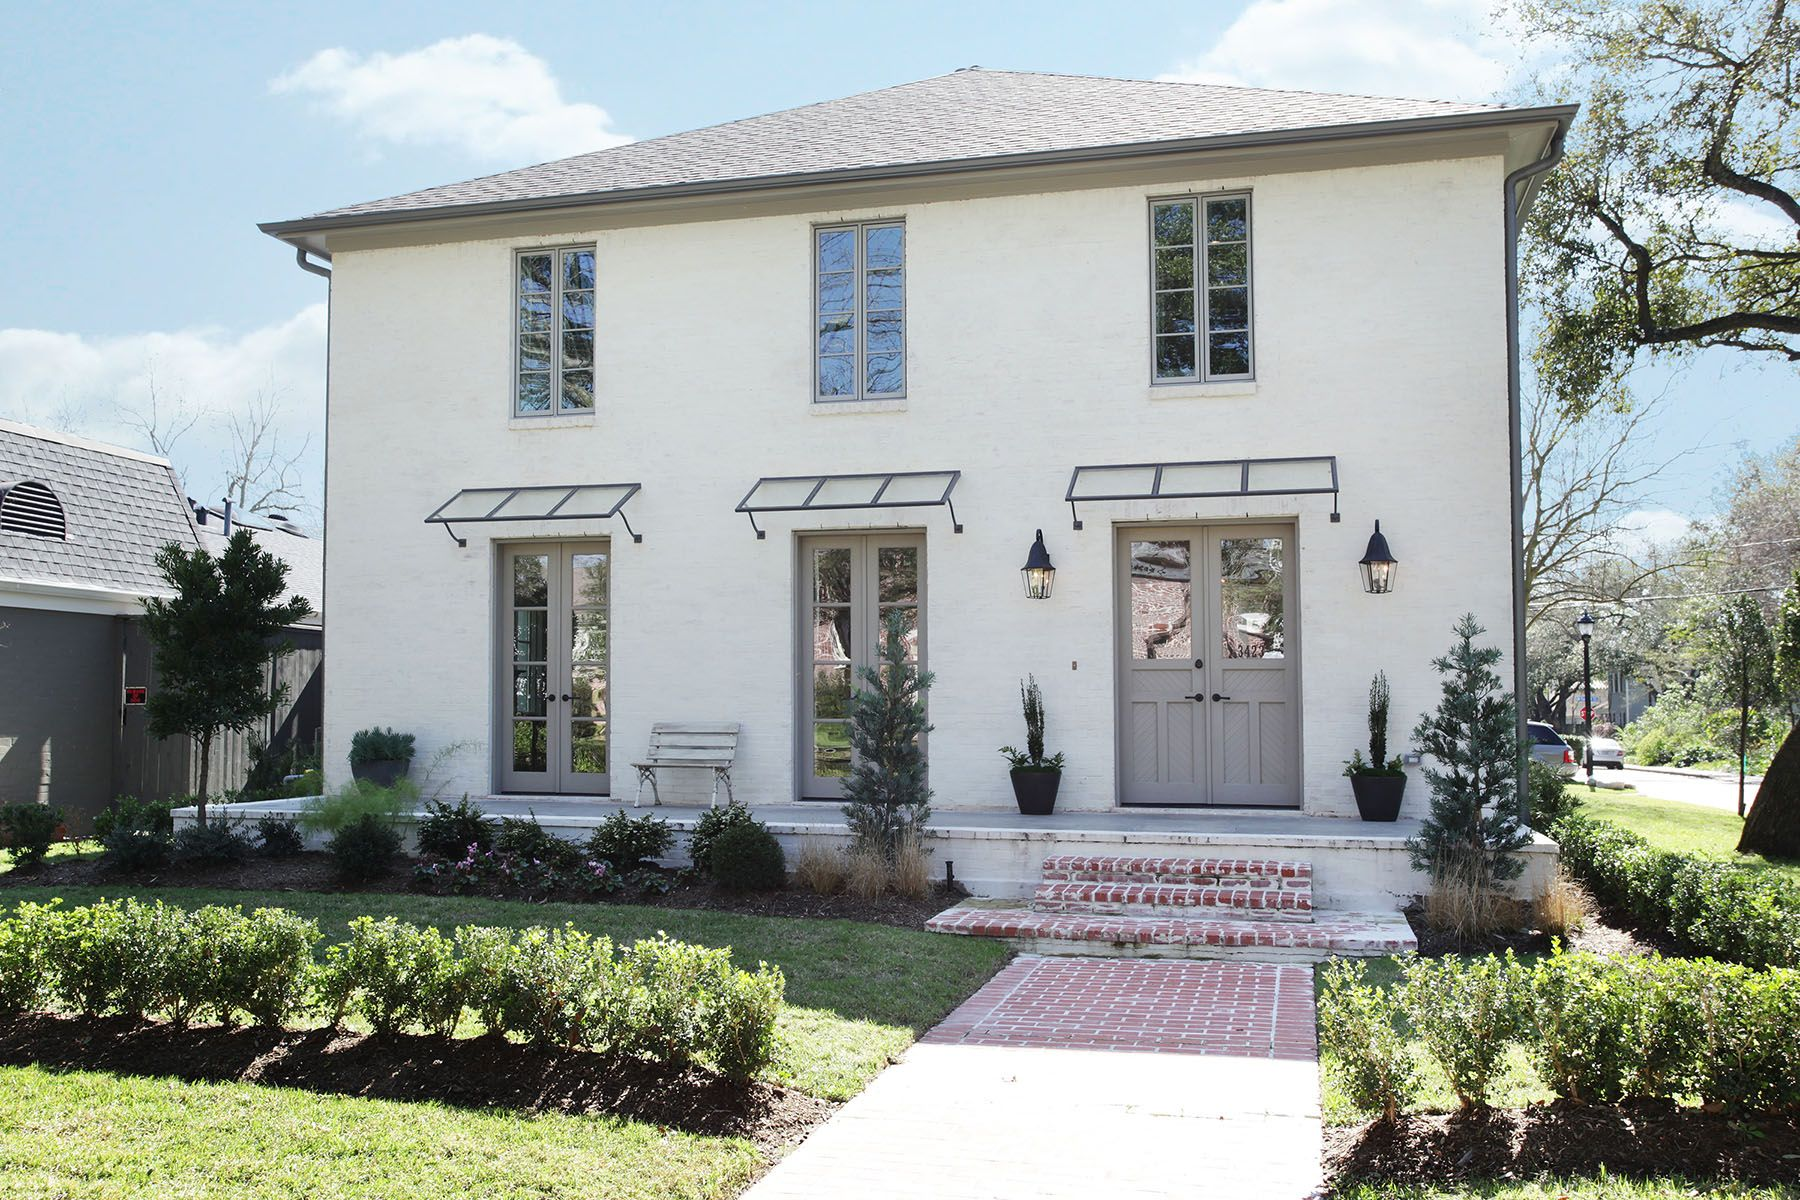 Popular trim colors for white houses - White Brick Gray Trim Door Love The Color Of The Windows